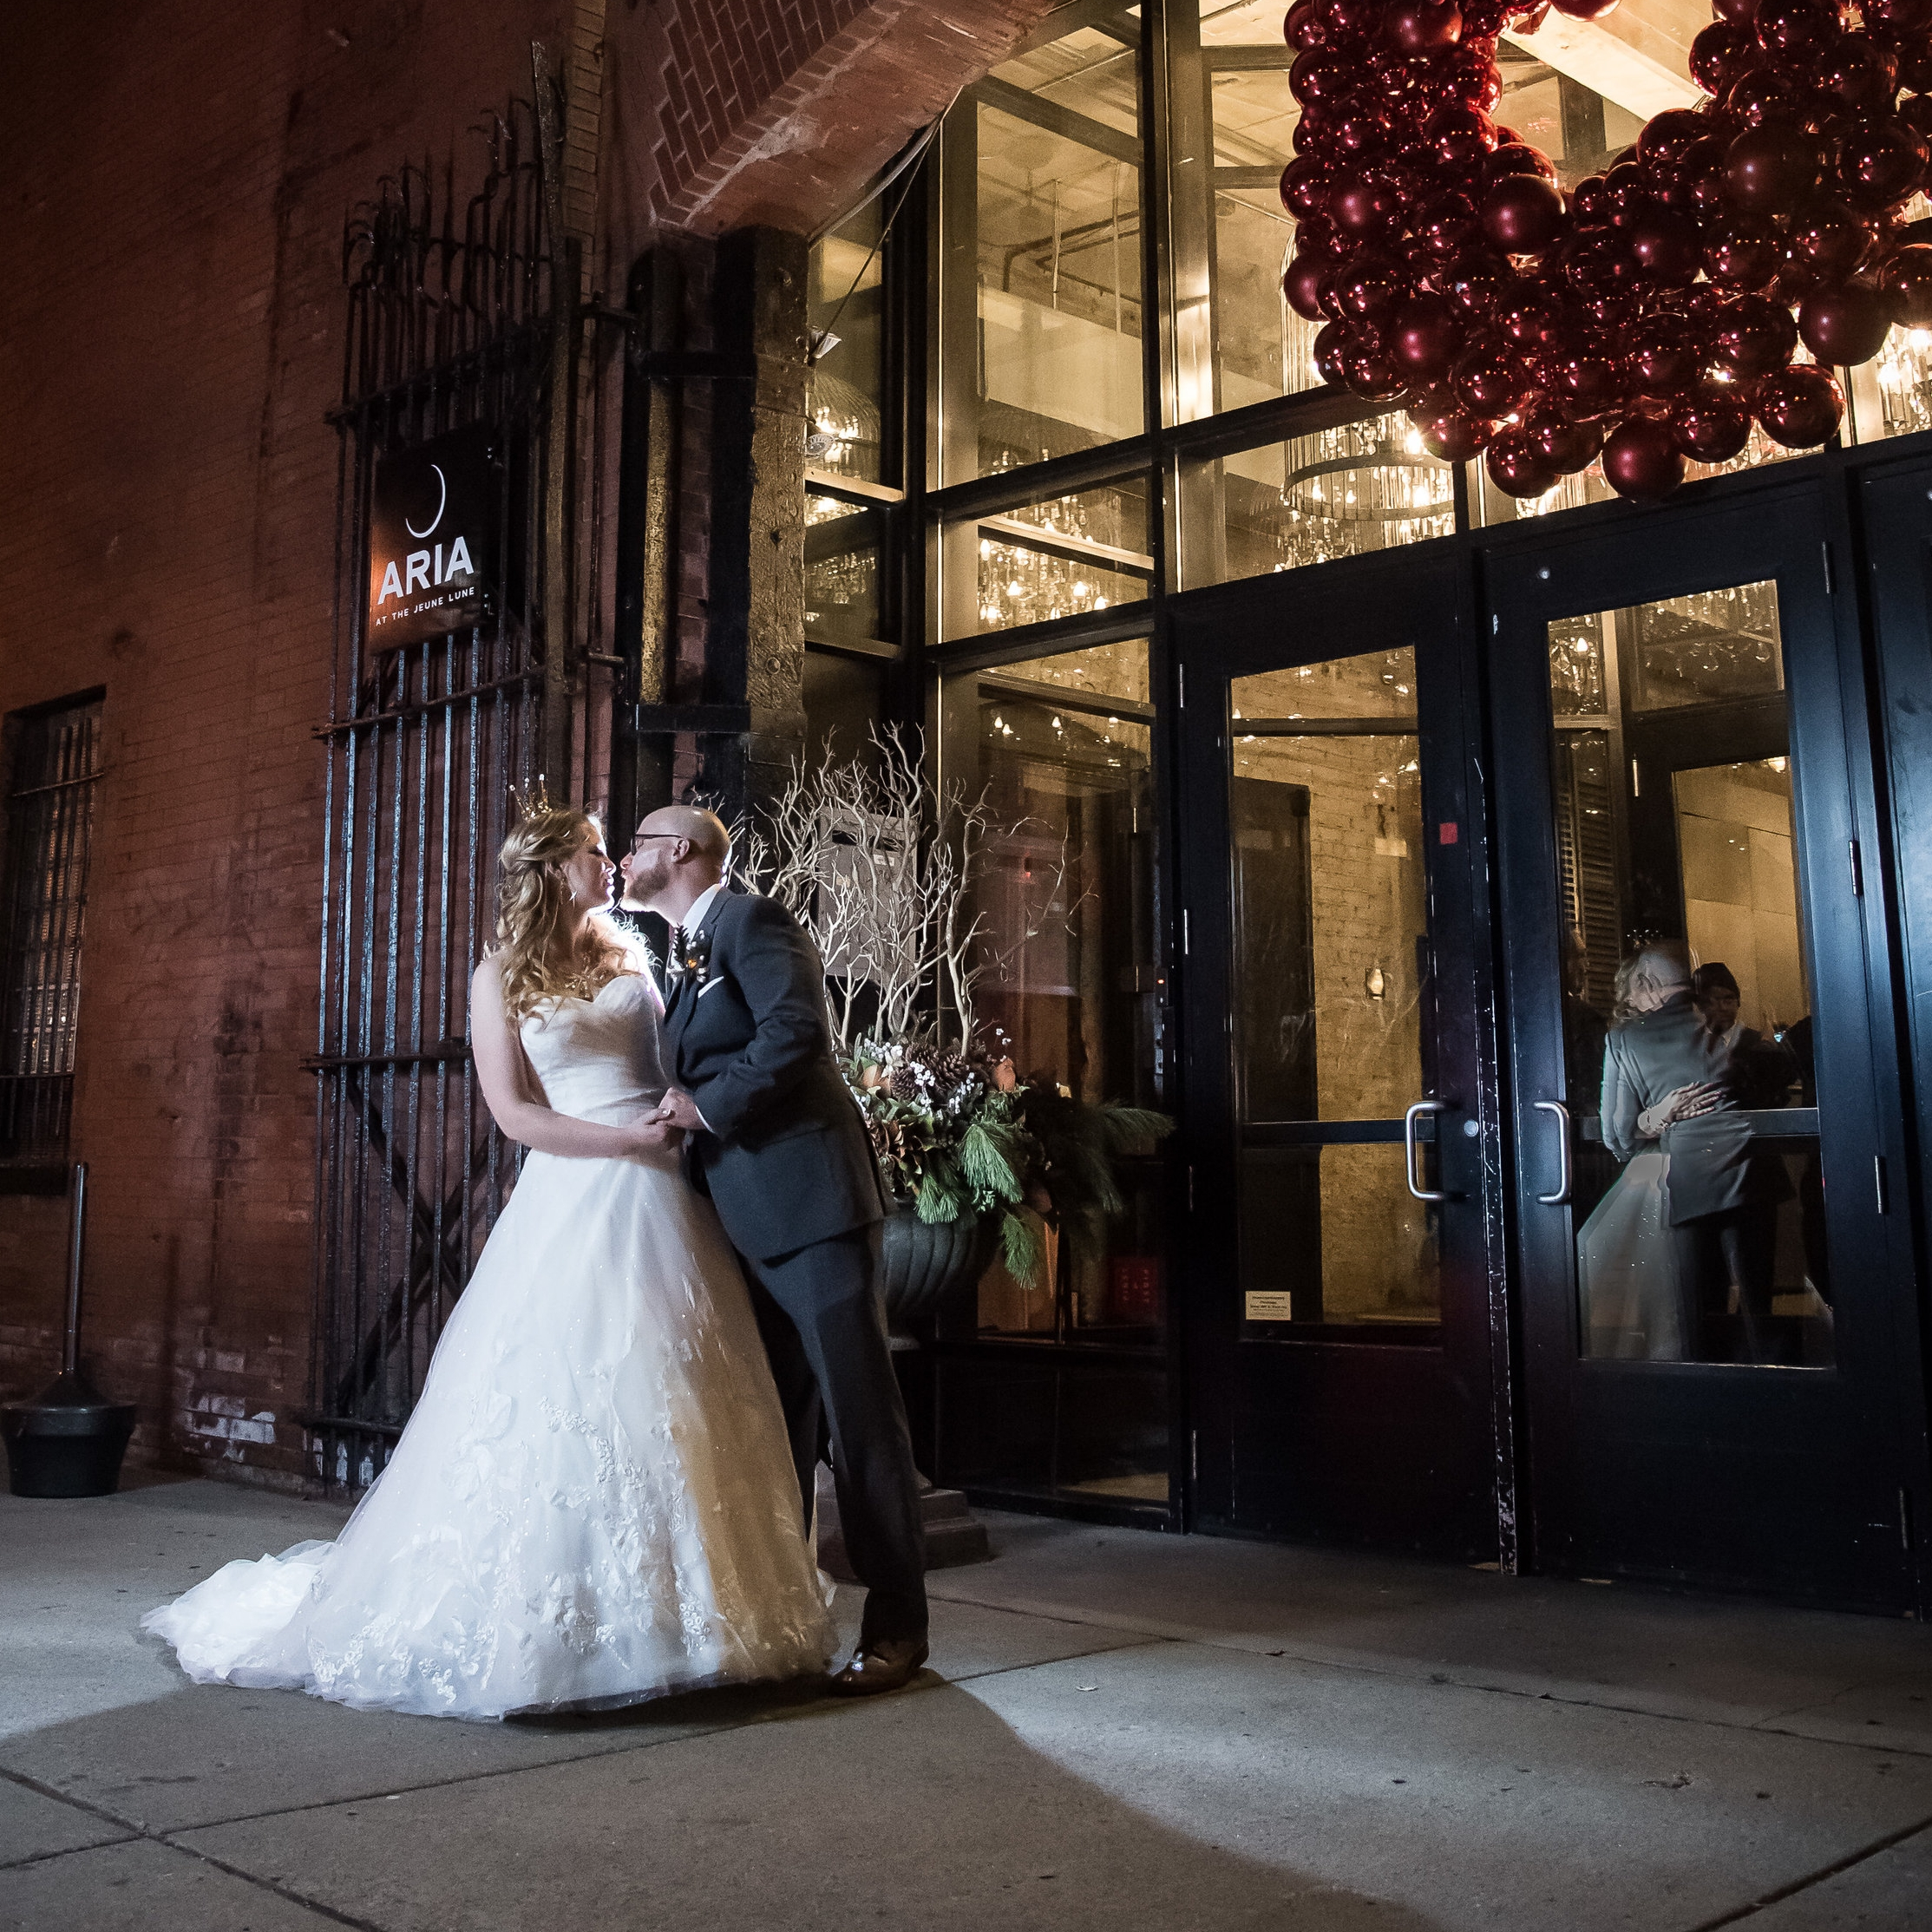 Heirloom Packages - All day coverage with two photographers, an engagement session, album and more. This is the gold standard for memorable, pristinely crafted wedding photos.Starting at $3,800